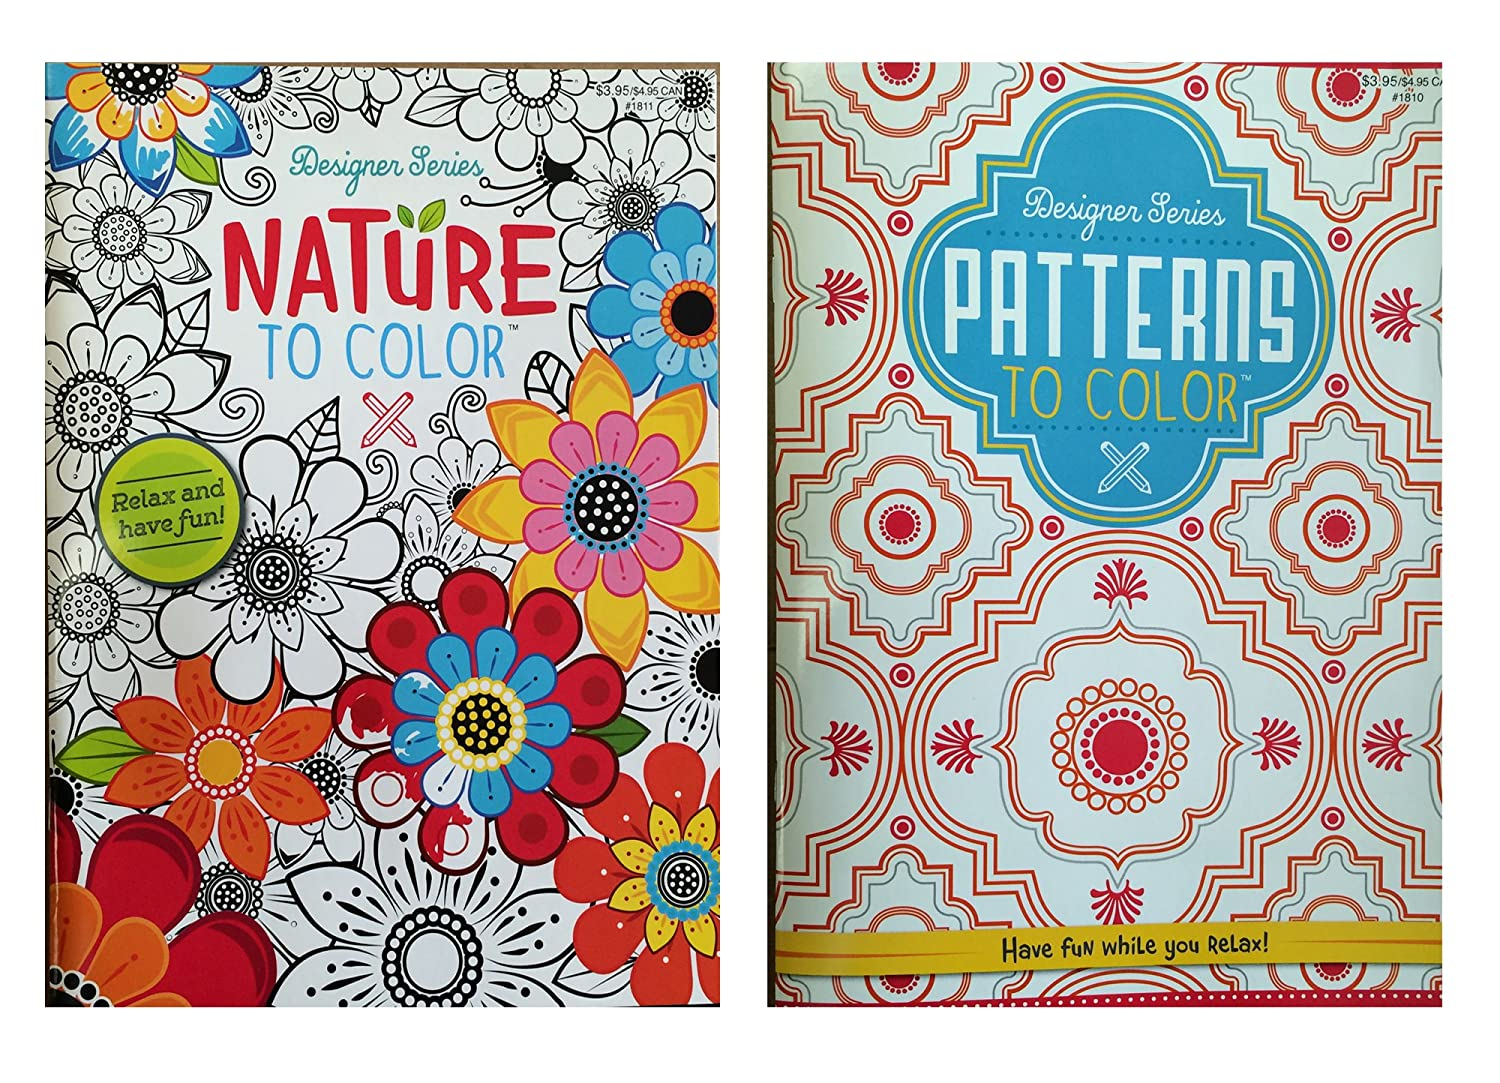 Amazon.com: Designer Series Patterns To Color & Nature To Color ...